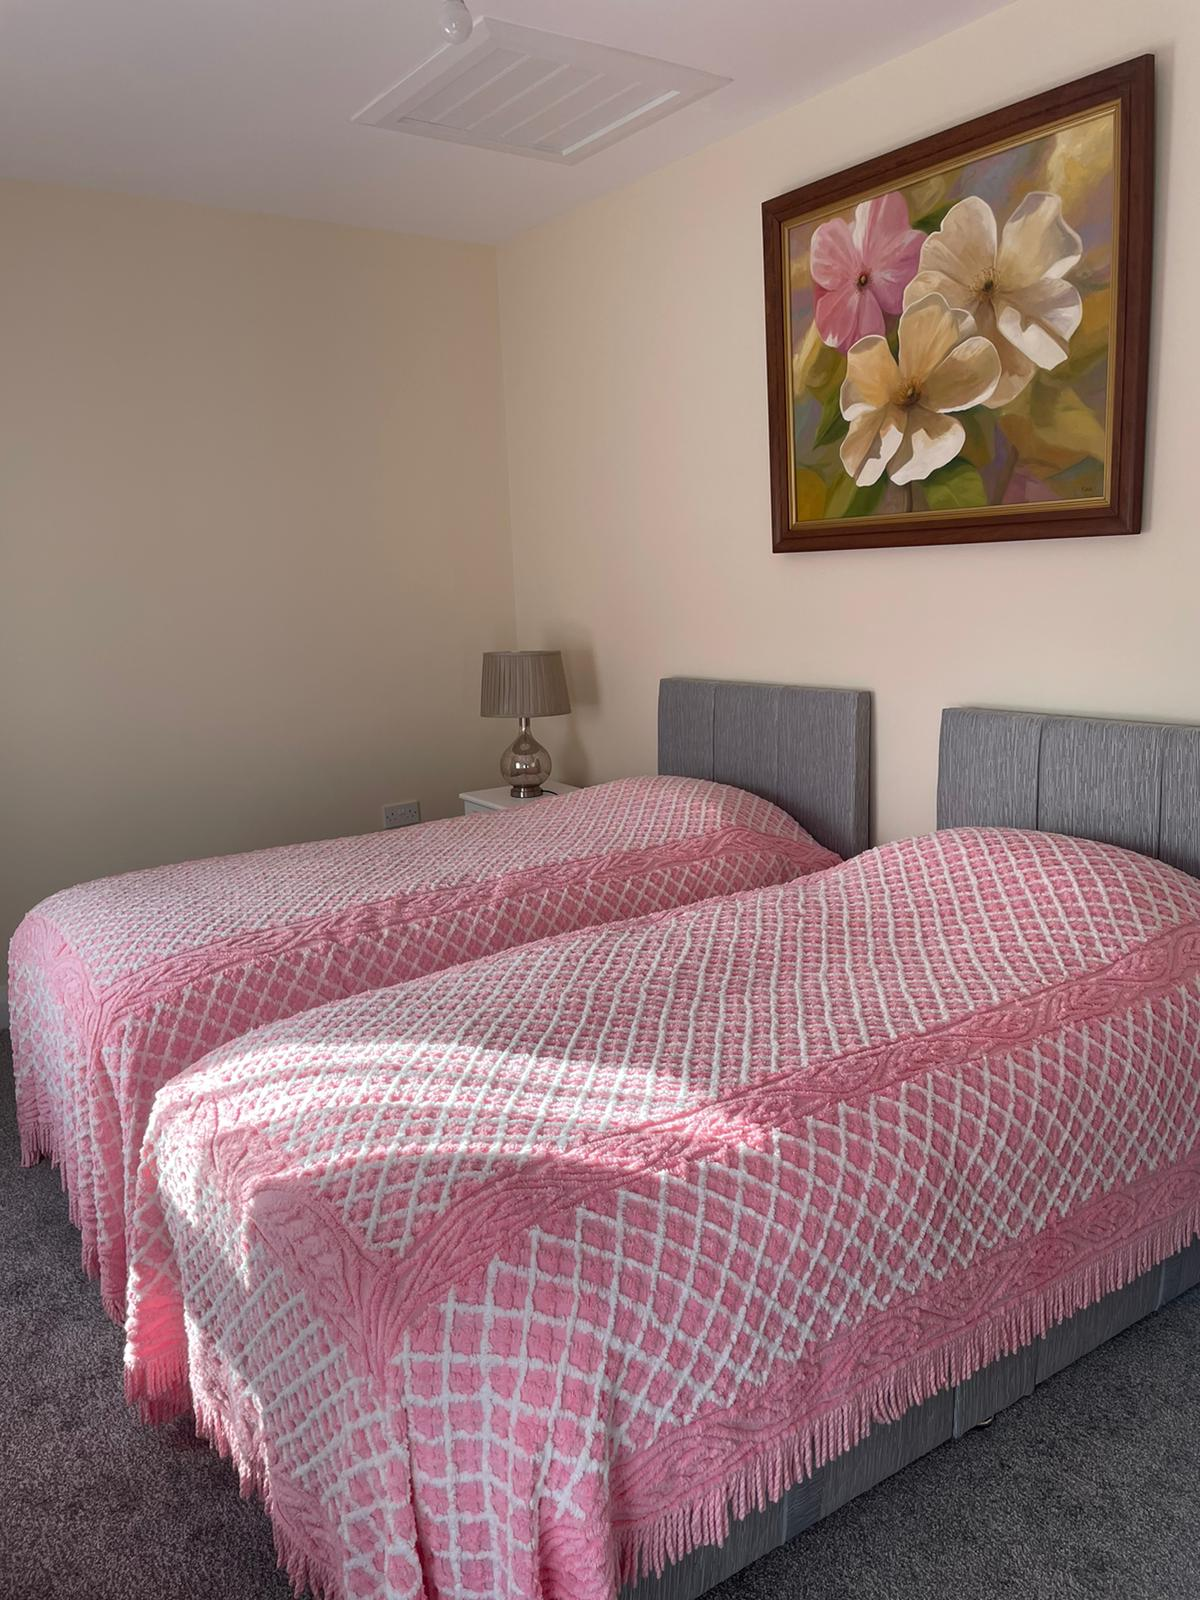 Secondary bedroom from another angle at Heron Brook Lodge - Luxury Stay